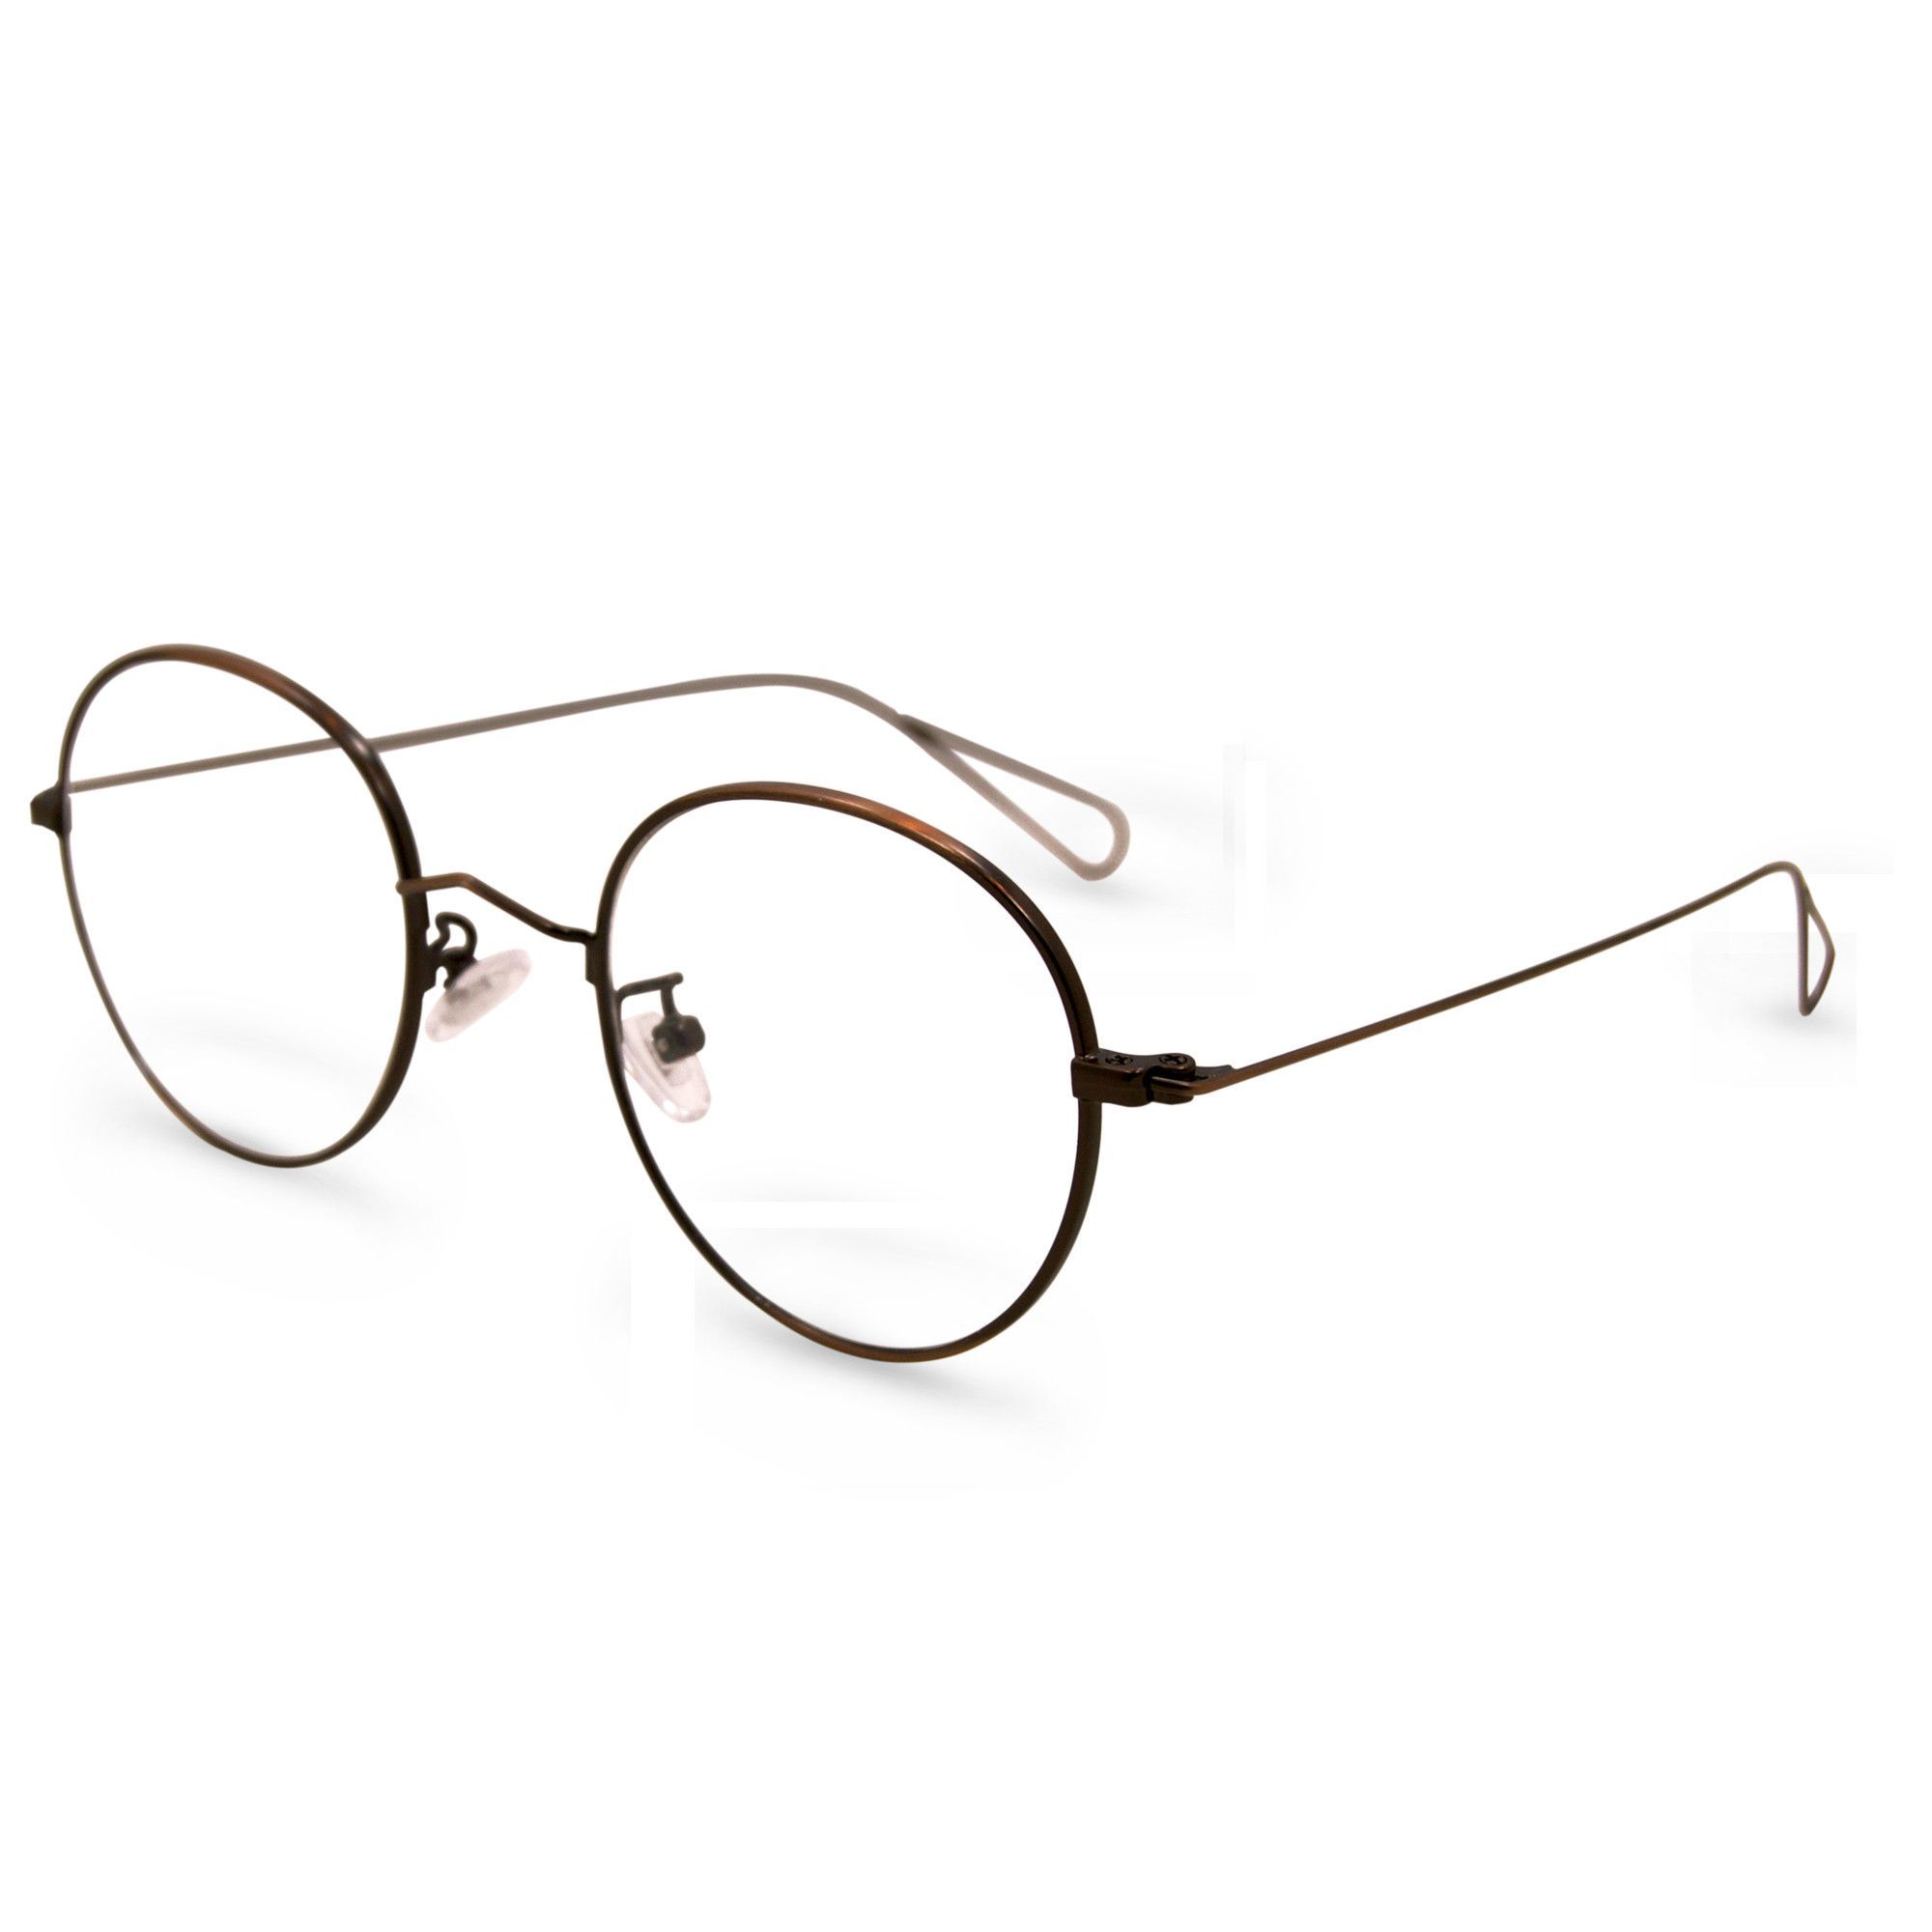 RX-Able Round Reading Glasses with Prescription Eyeglass Frames ...